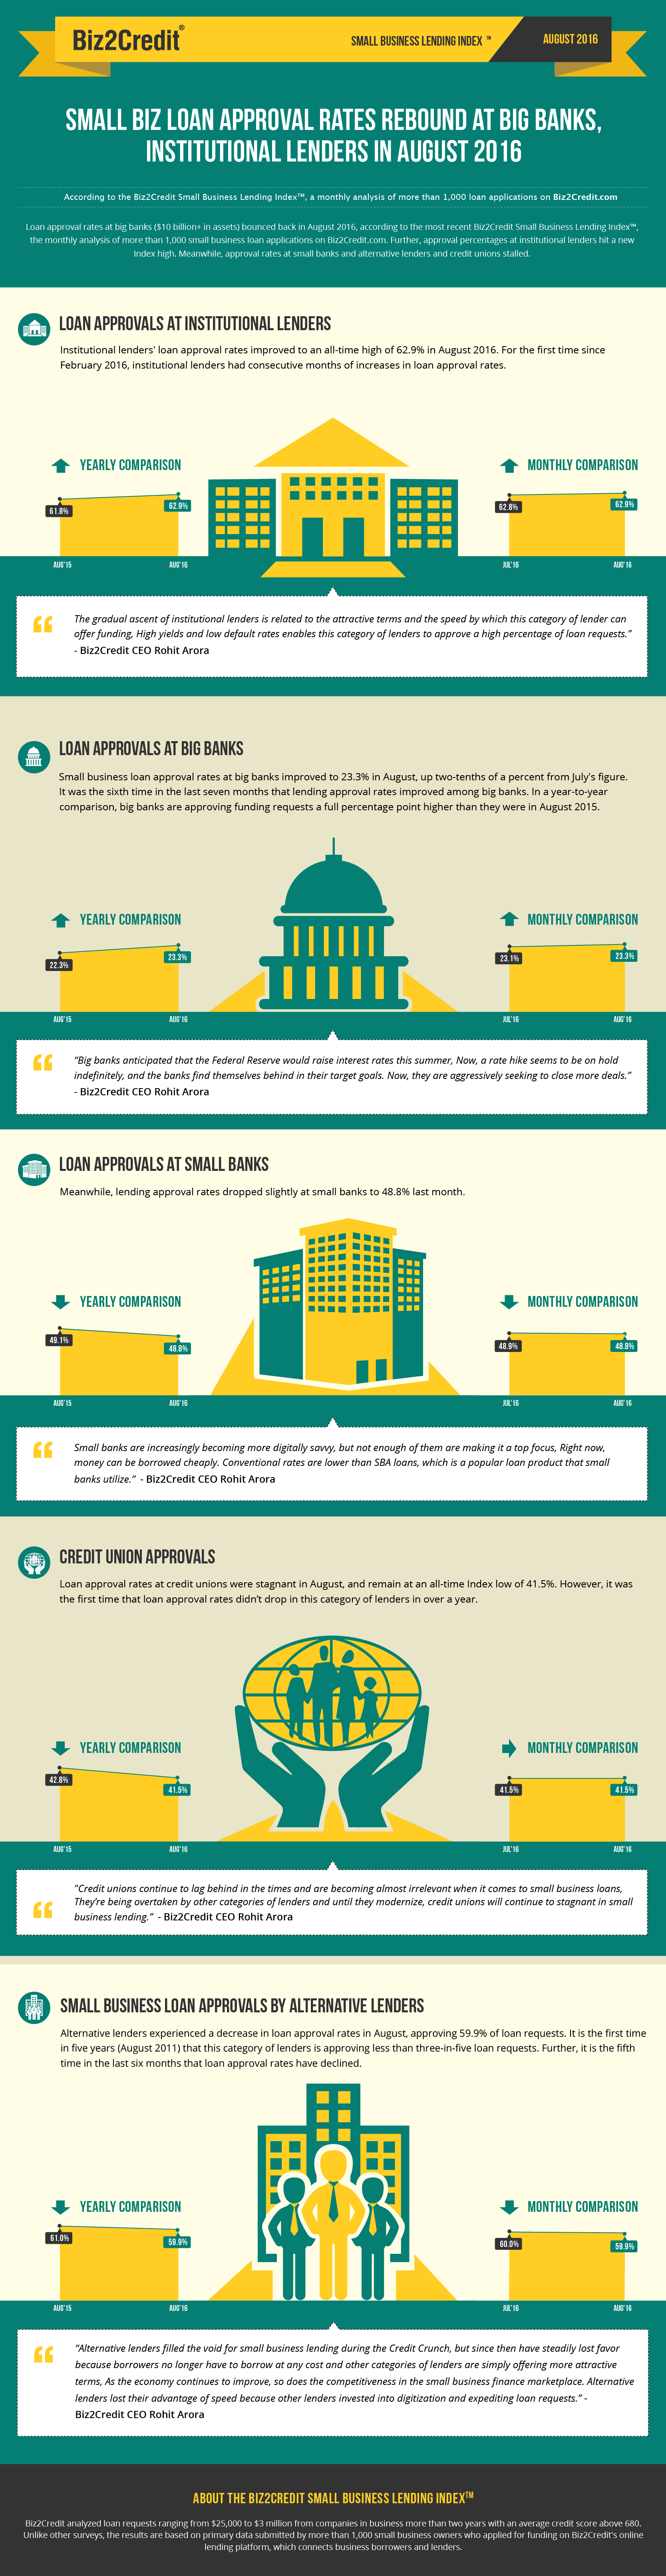 Aug16 Lending Index Infographic